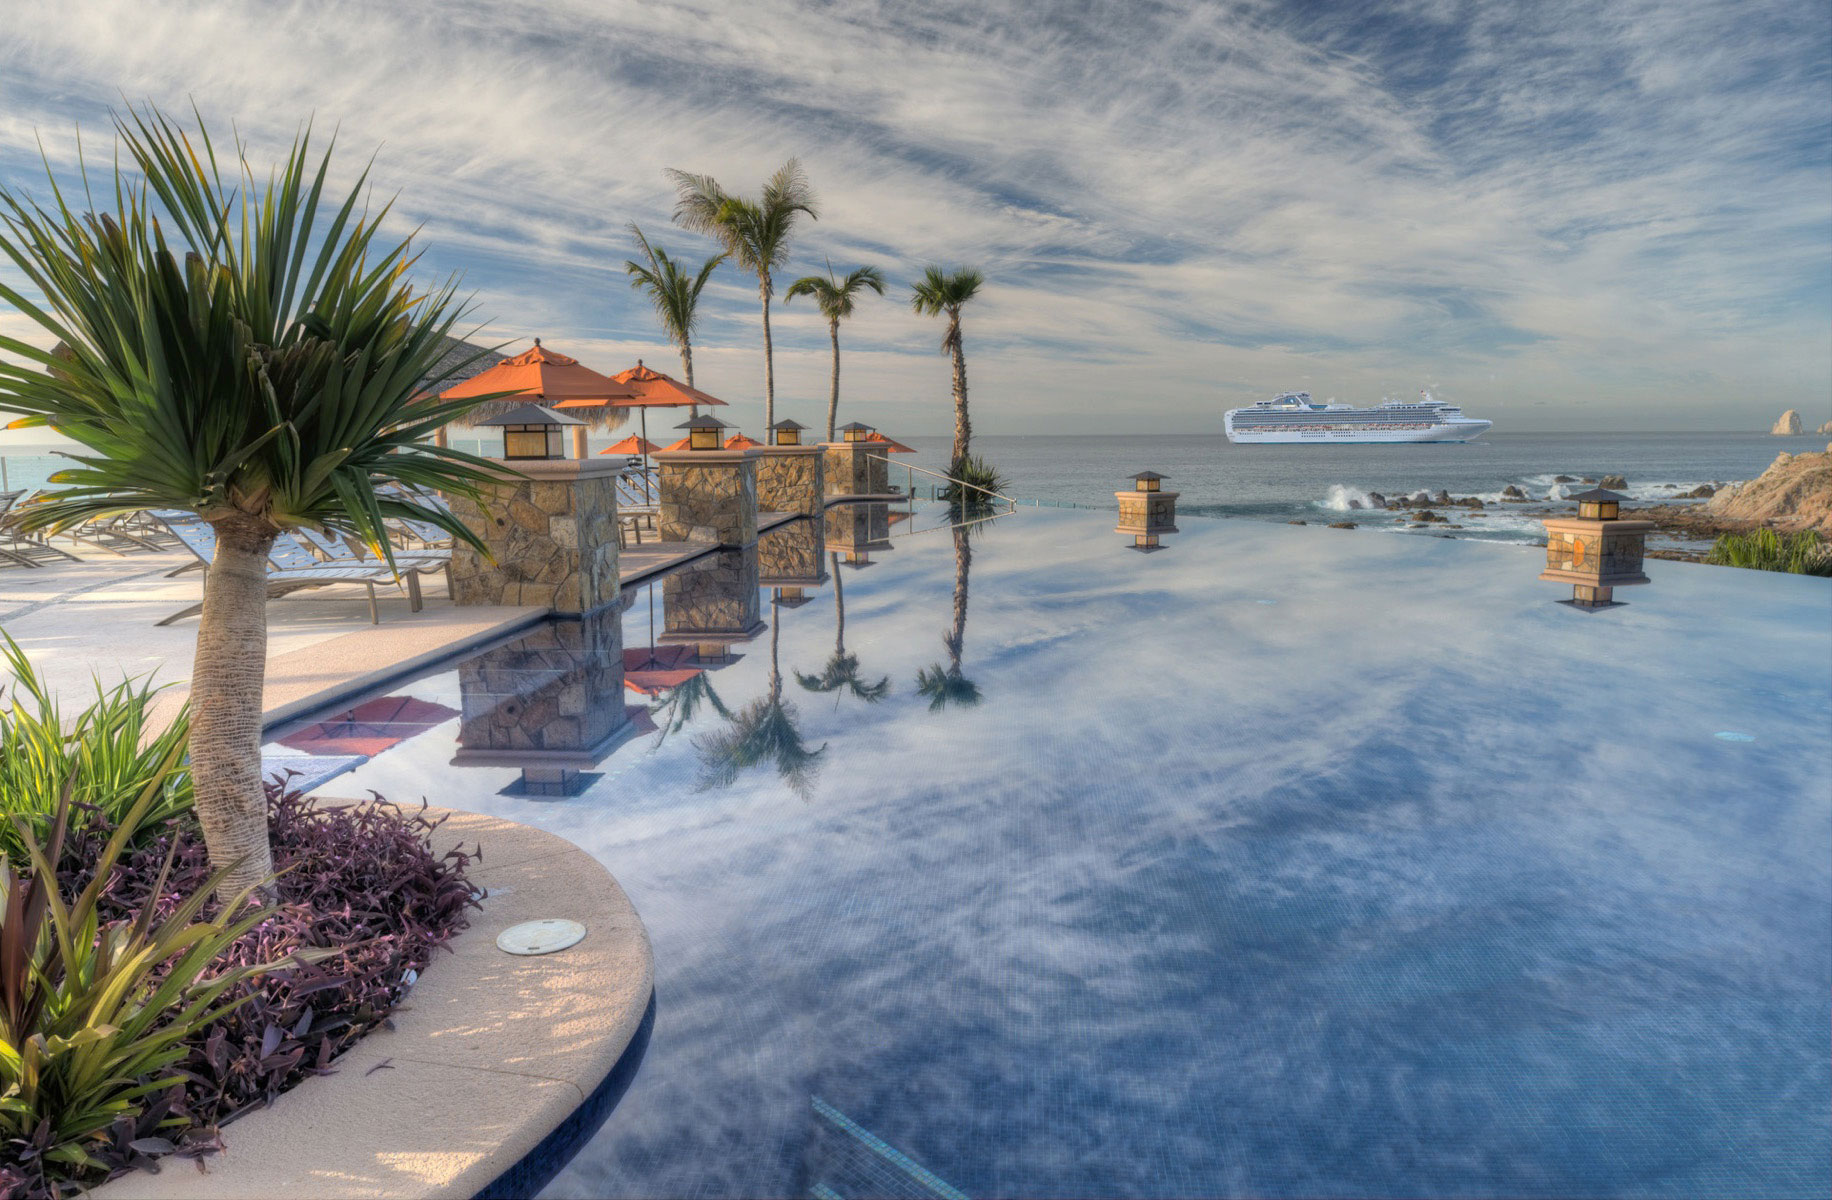 Pool - Increasing Real Estate Values Through Photography